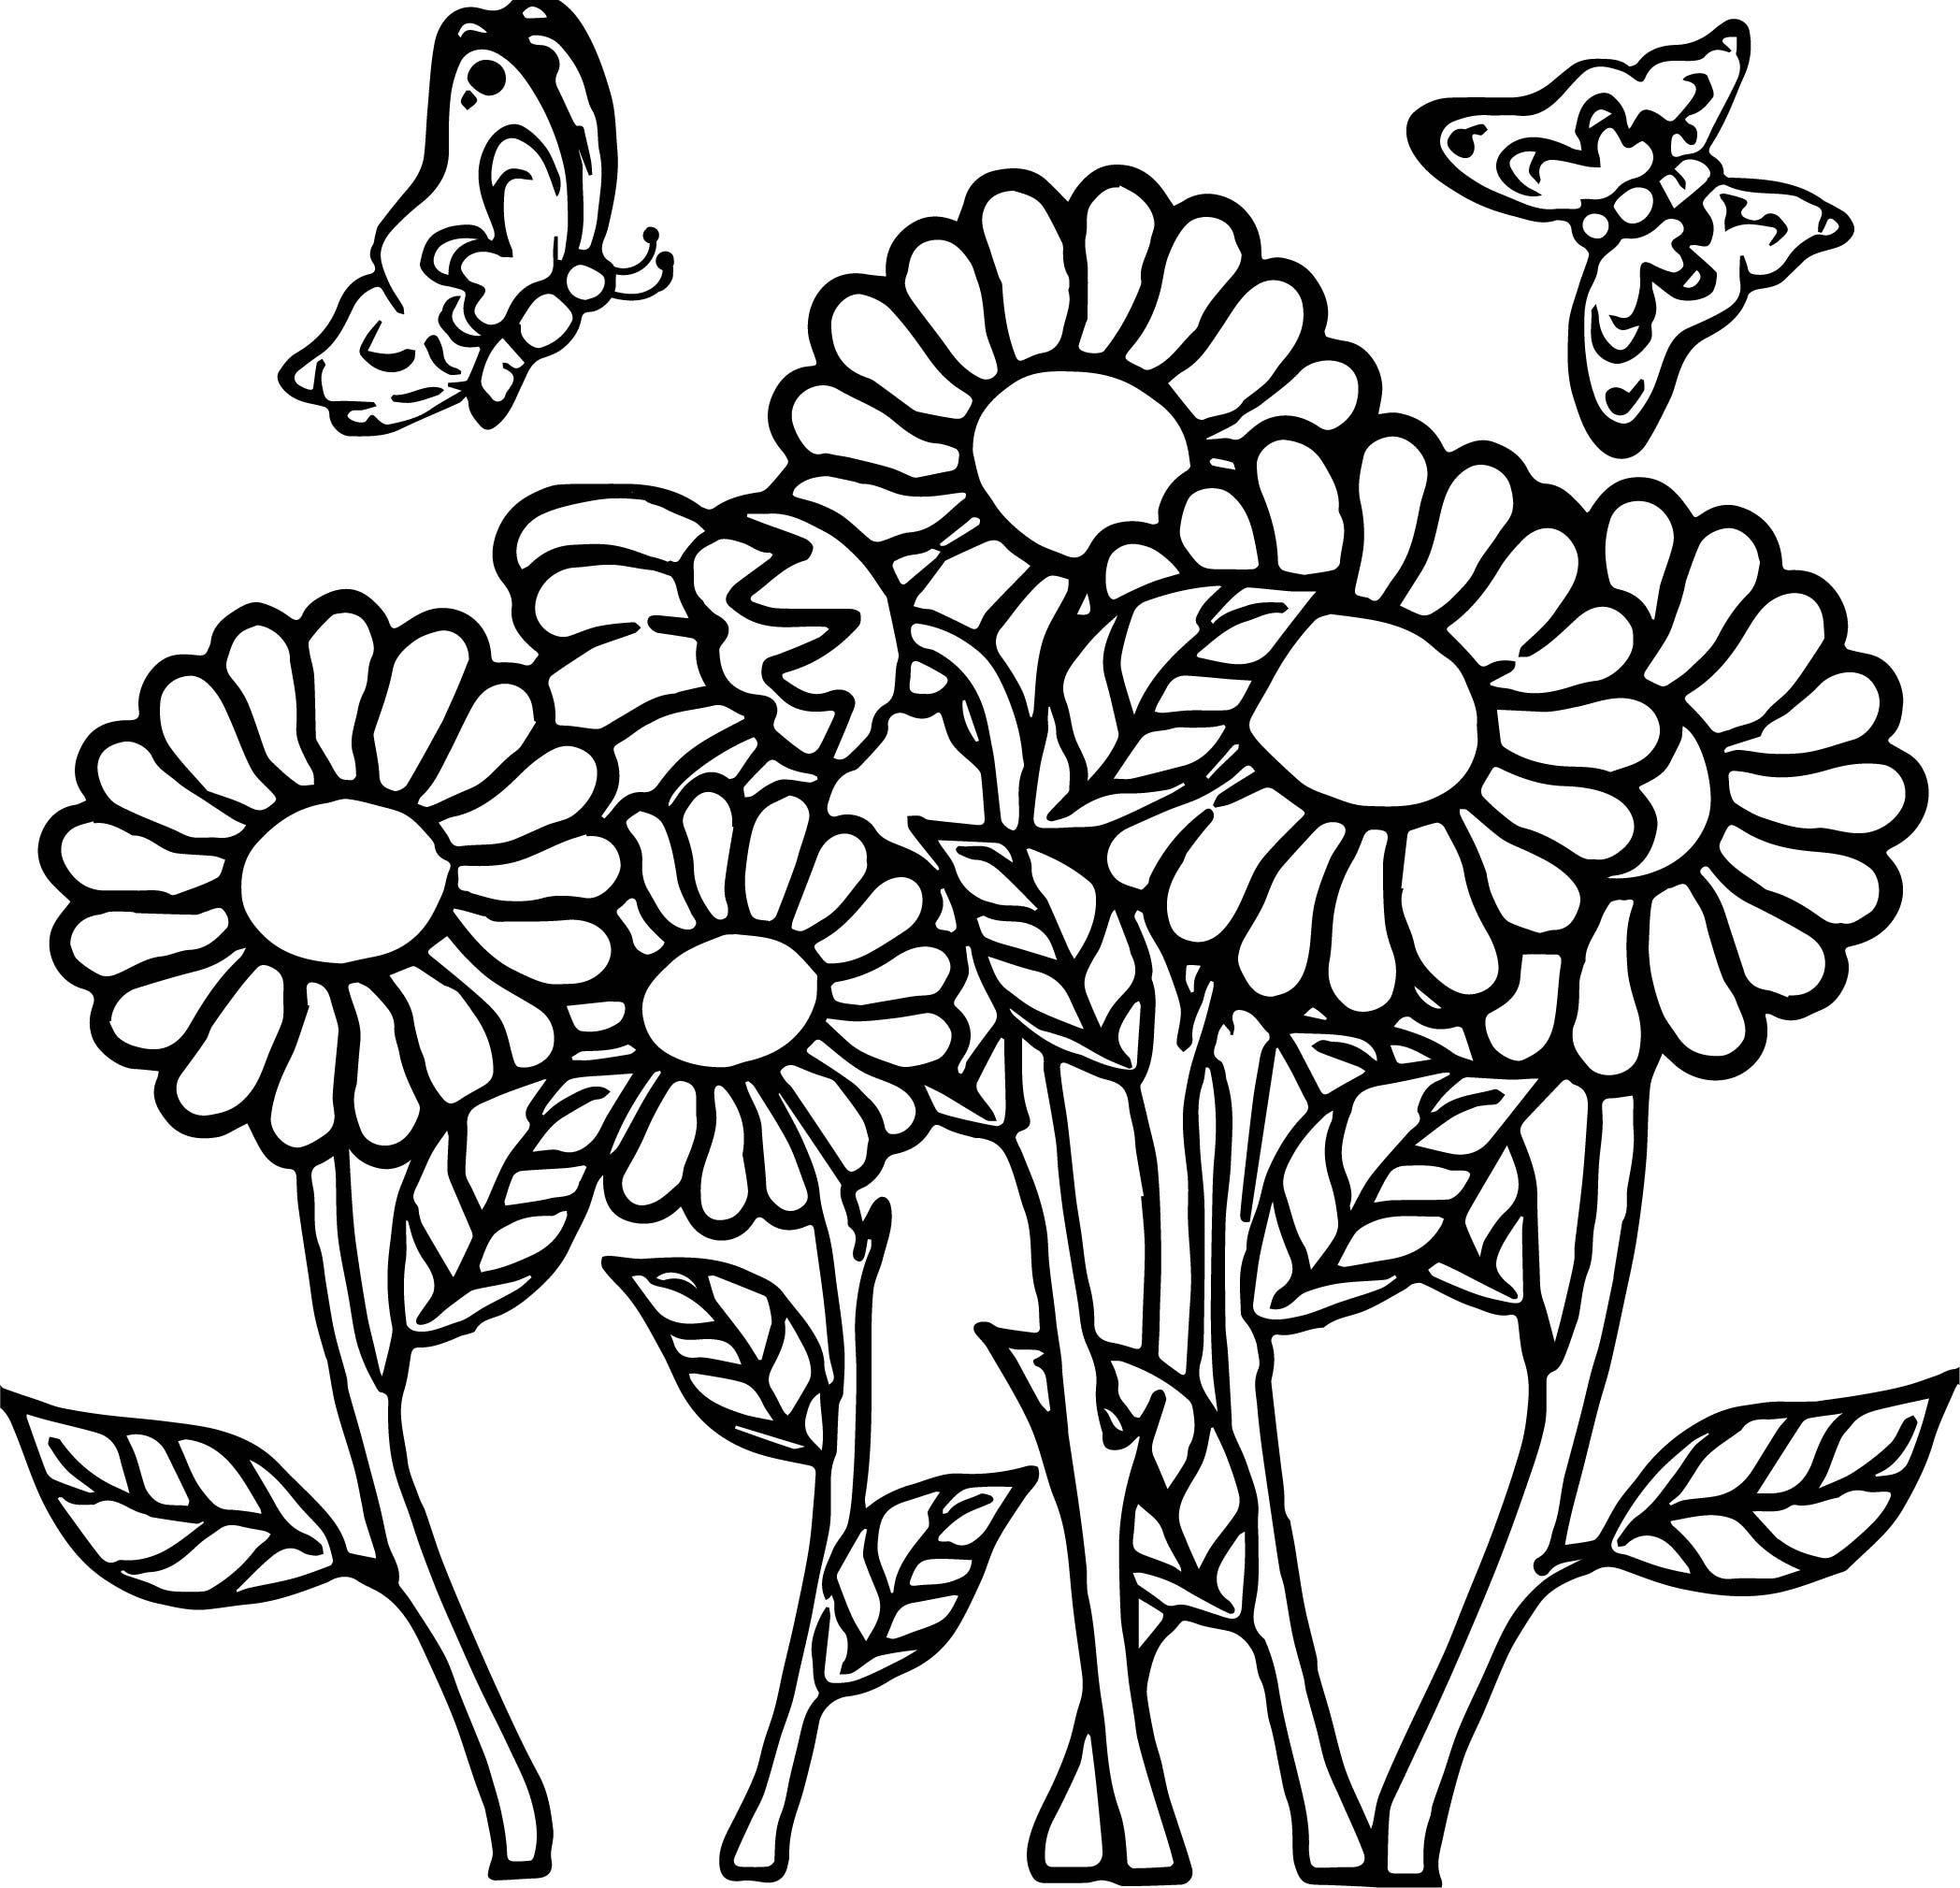 Awesome Butterfly Flower Coloring Page Flower Coloring Pages